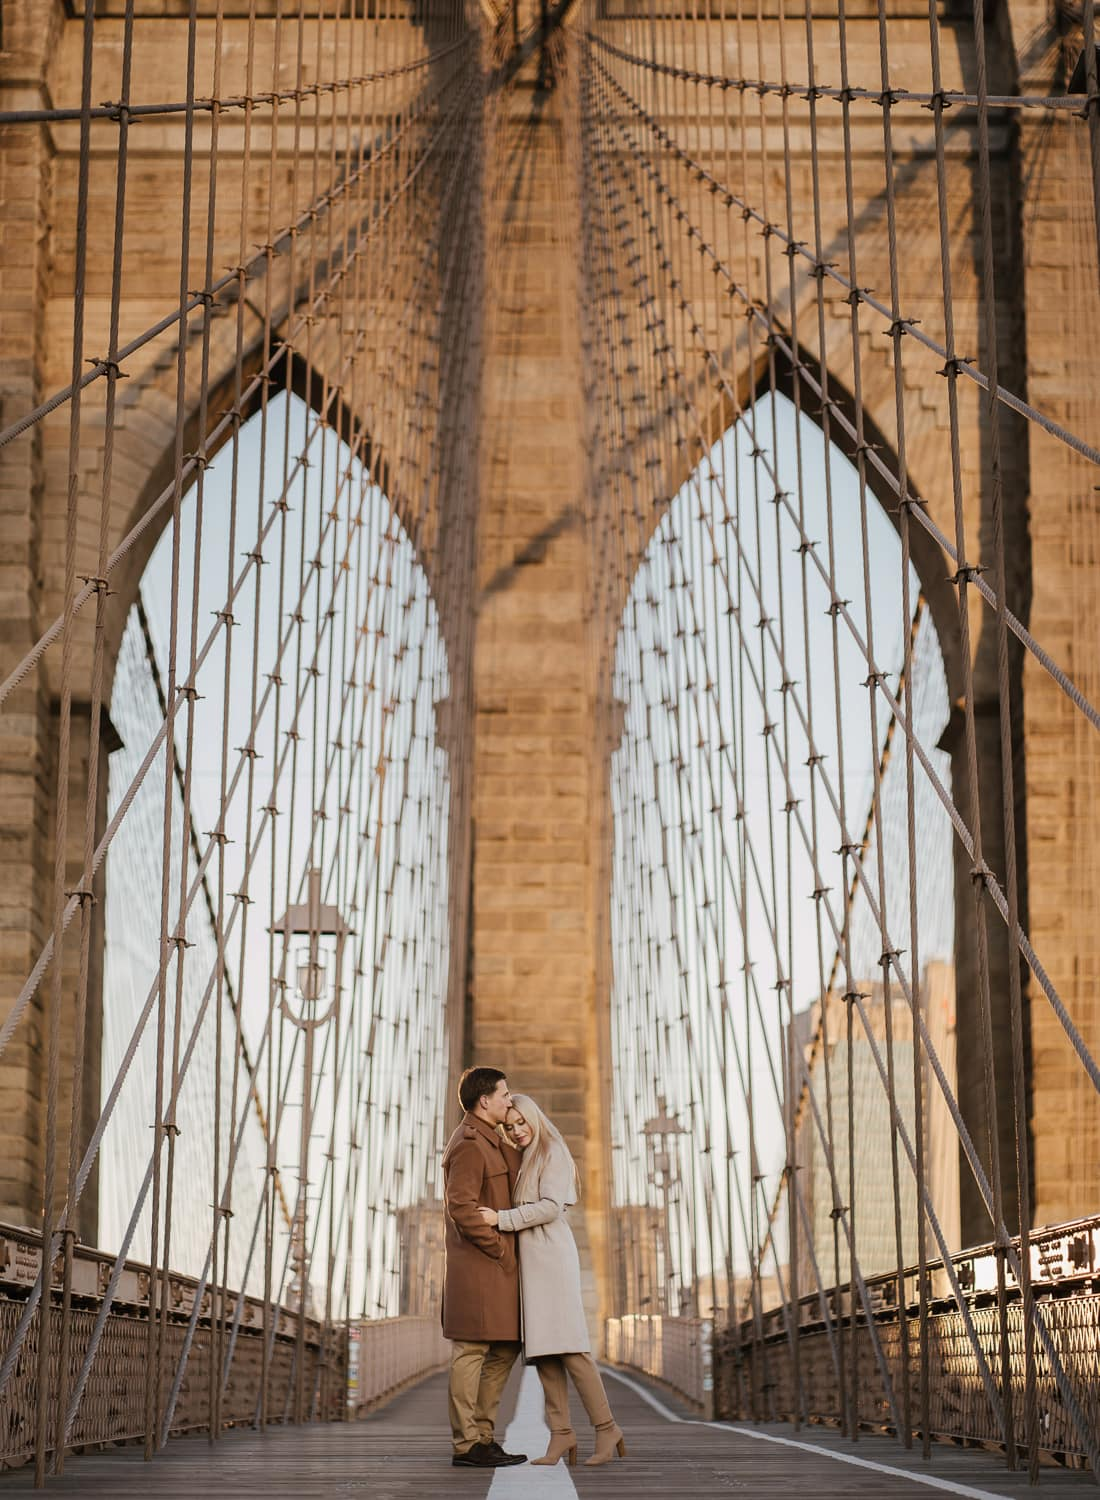 Couple posing during their engagement photoshoot on the Brooklyn bridge